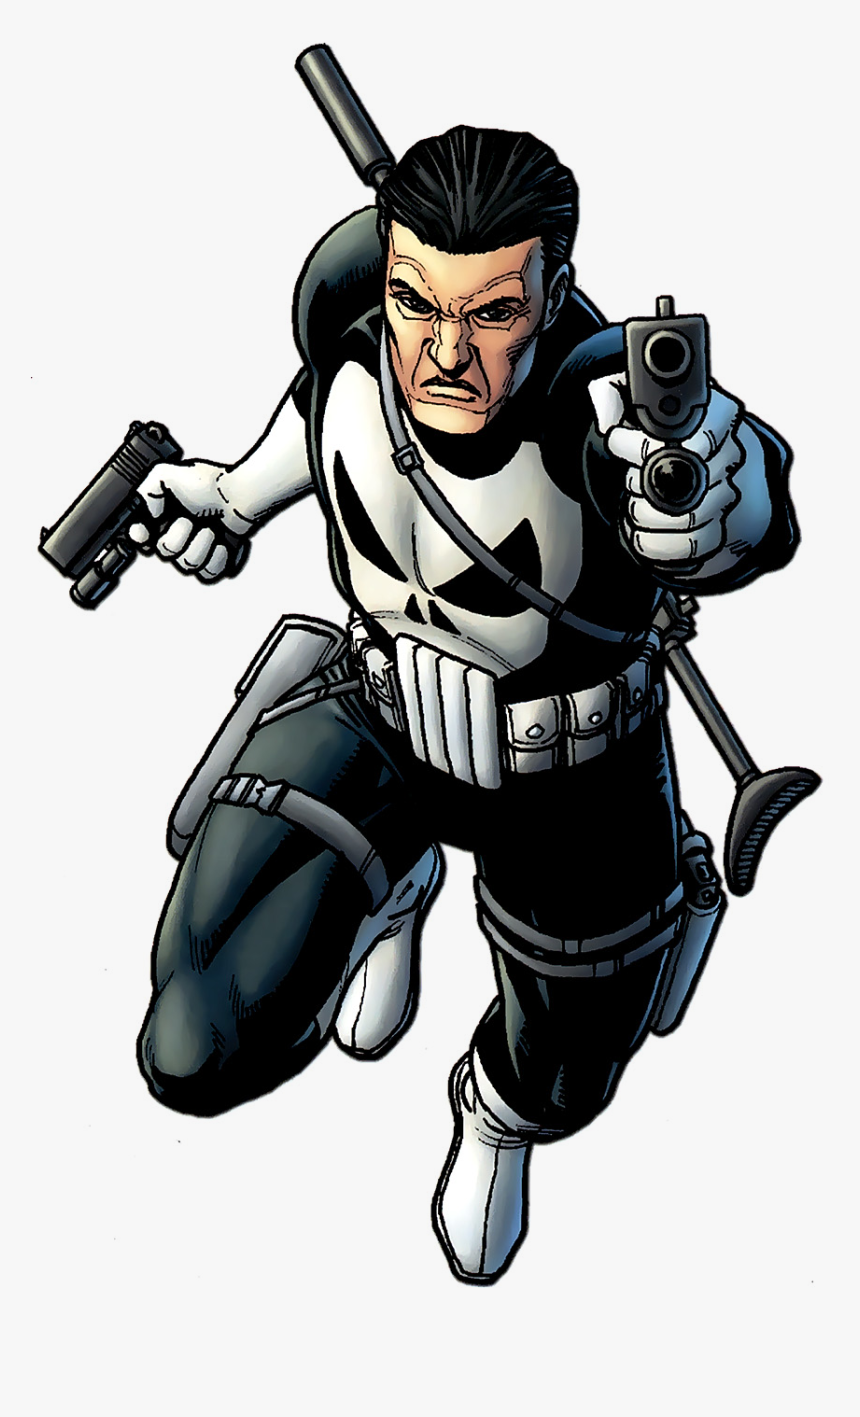 Punisher Comic Characters, HD Png Download, Free Download